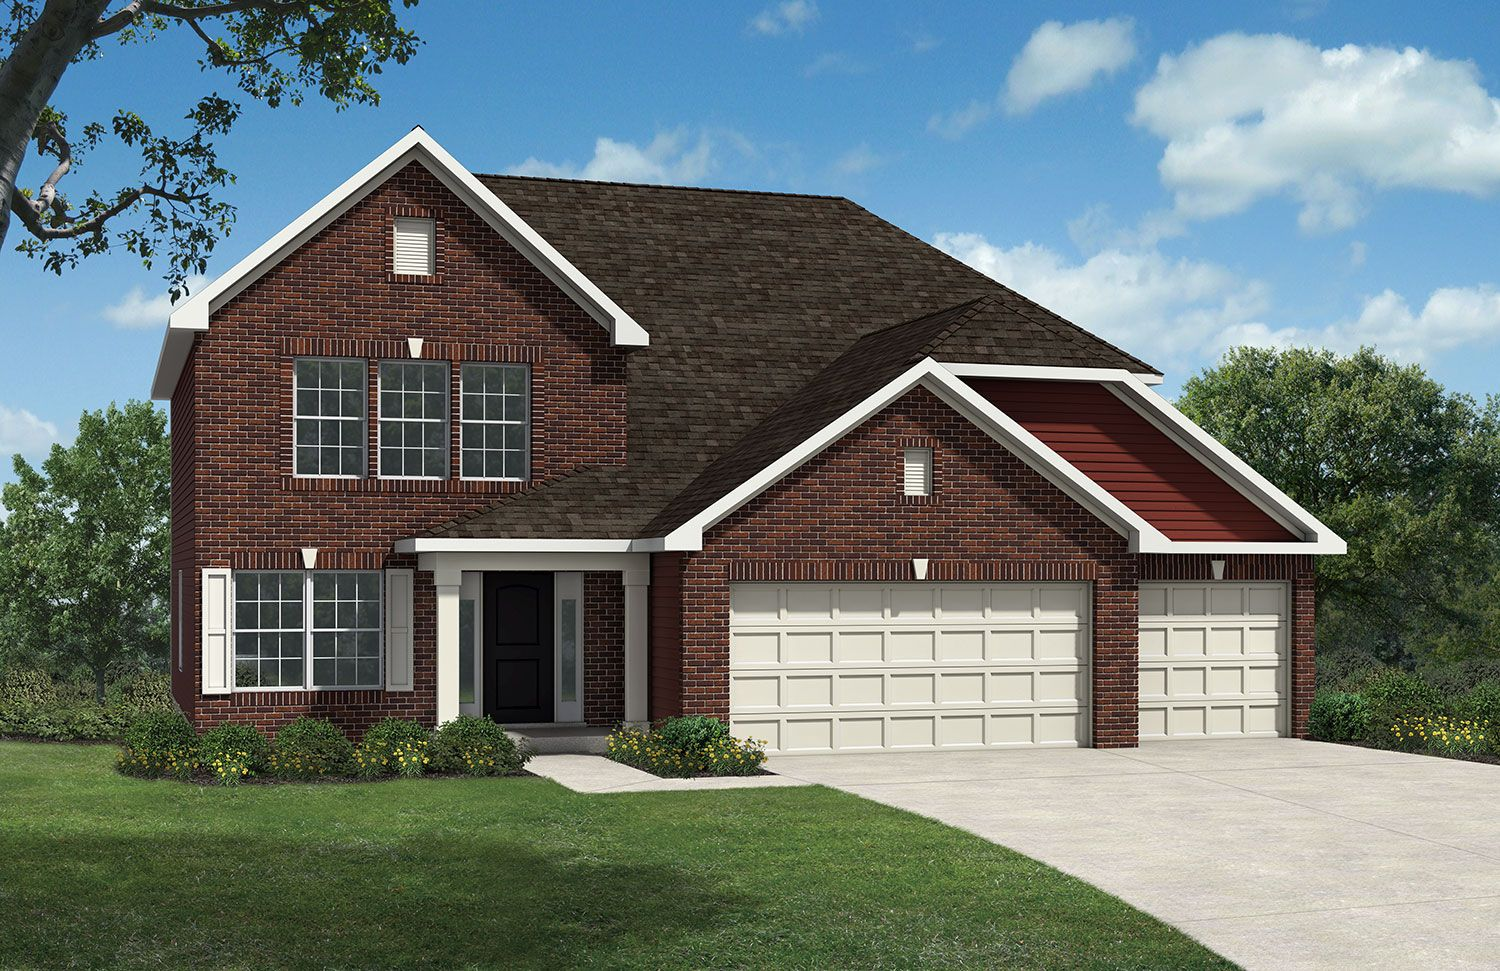 Westport homes of indianapolis stone crossing mckinley for Houses for sale westport